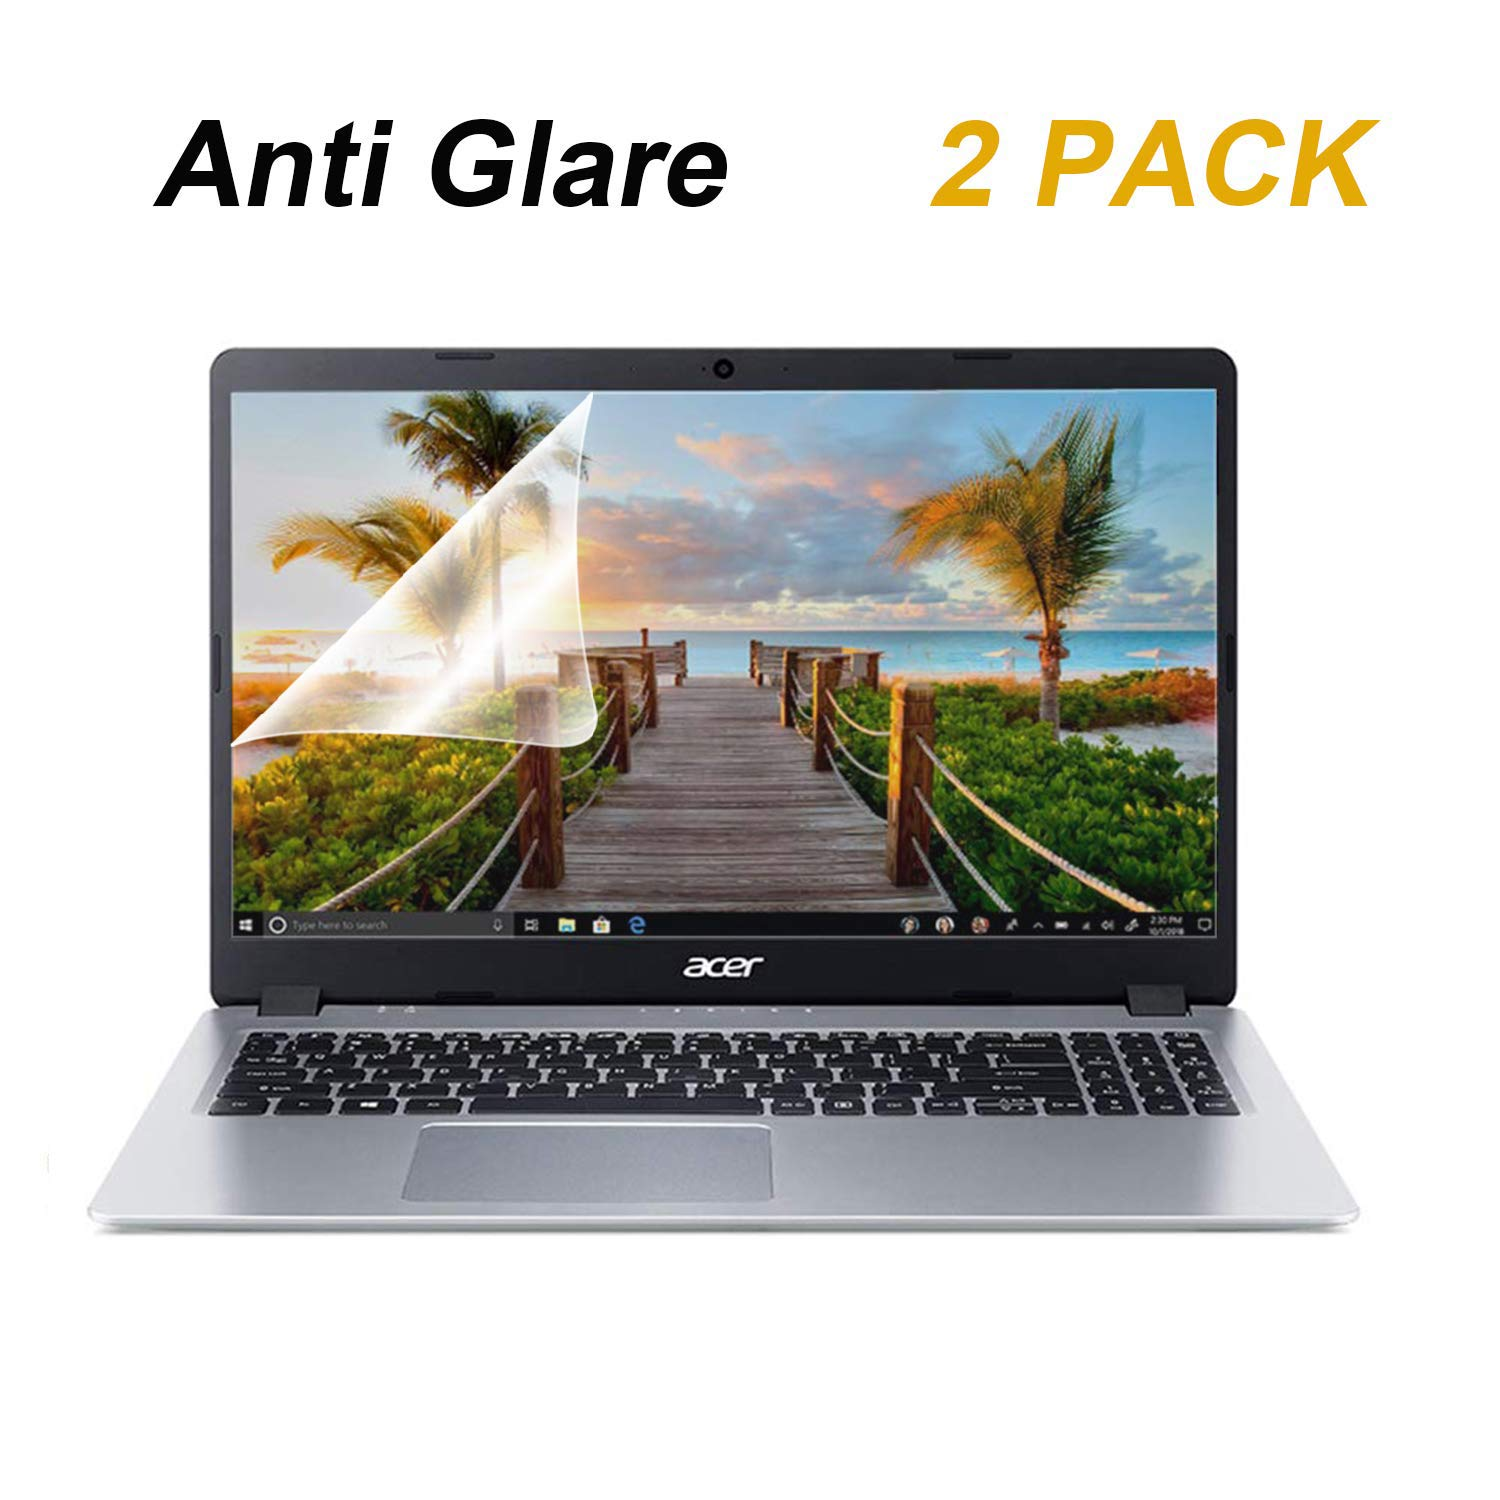 2-Pack FORITO 15.6 Inch Laptop Anti Glare(Matte) Screen Protector Cover for All 15.6 inch 16:9 Aspect Ratio Screen Laptop, Scratch Proof, Dust-Proof and Fingerprint Resistant